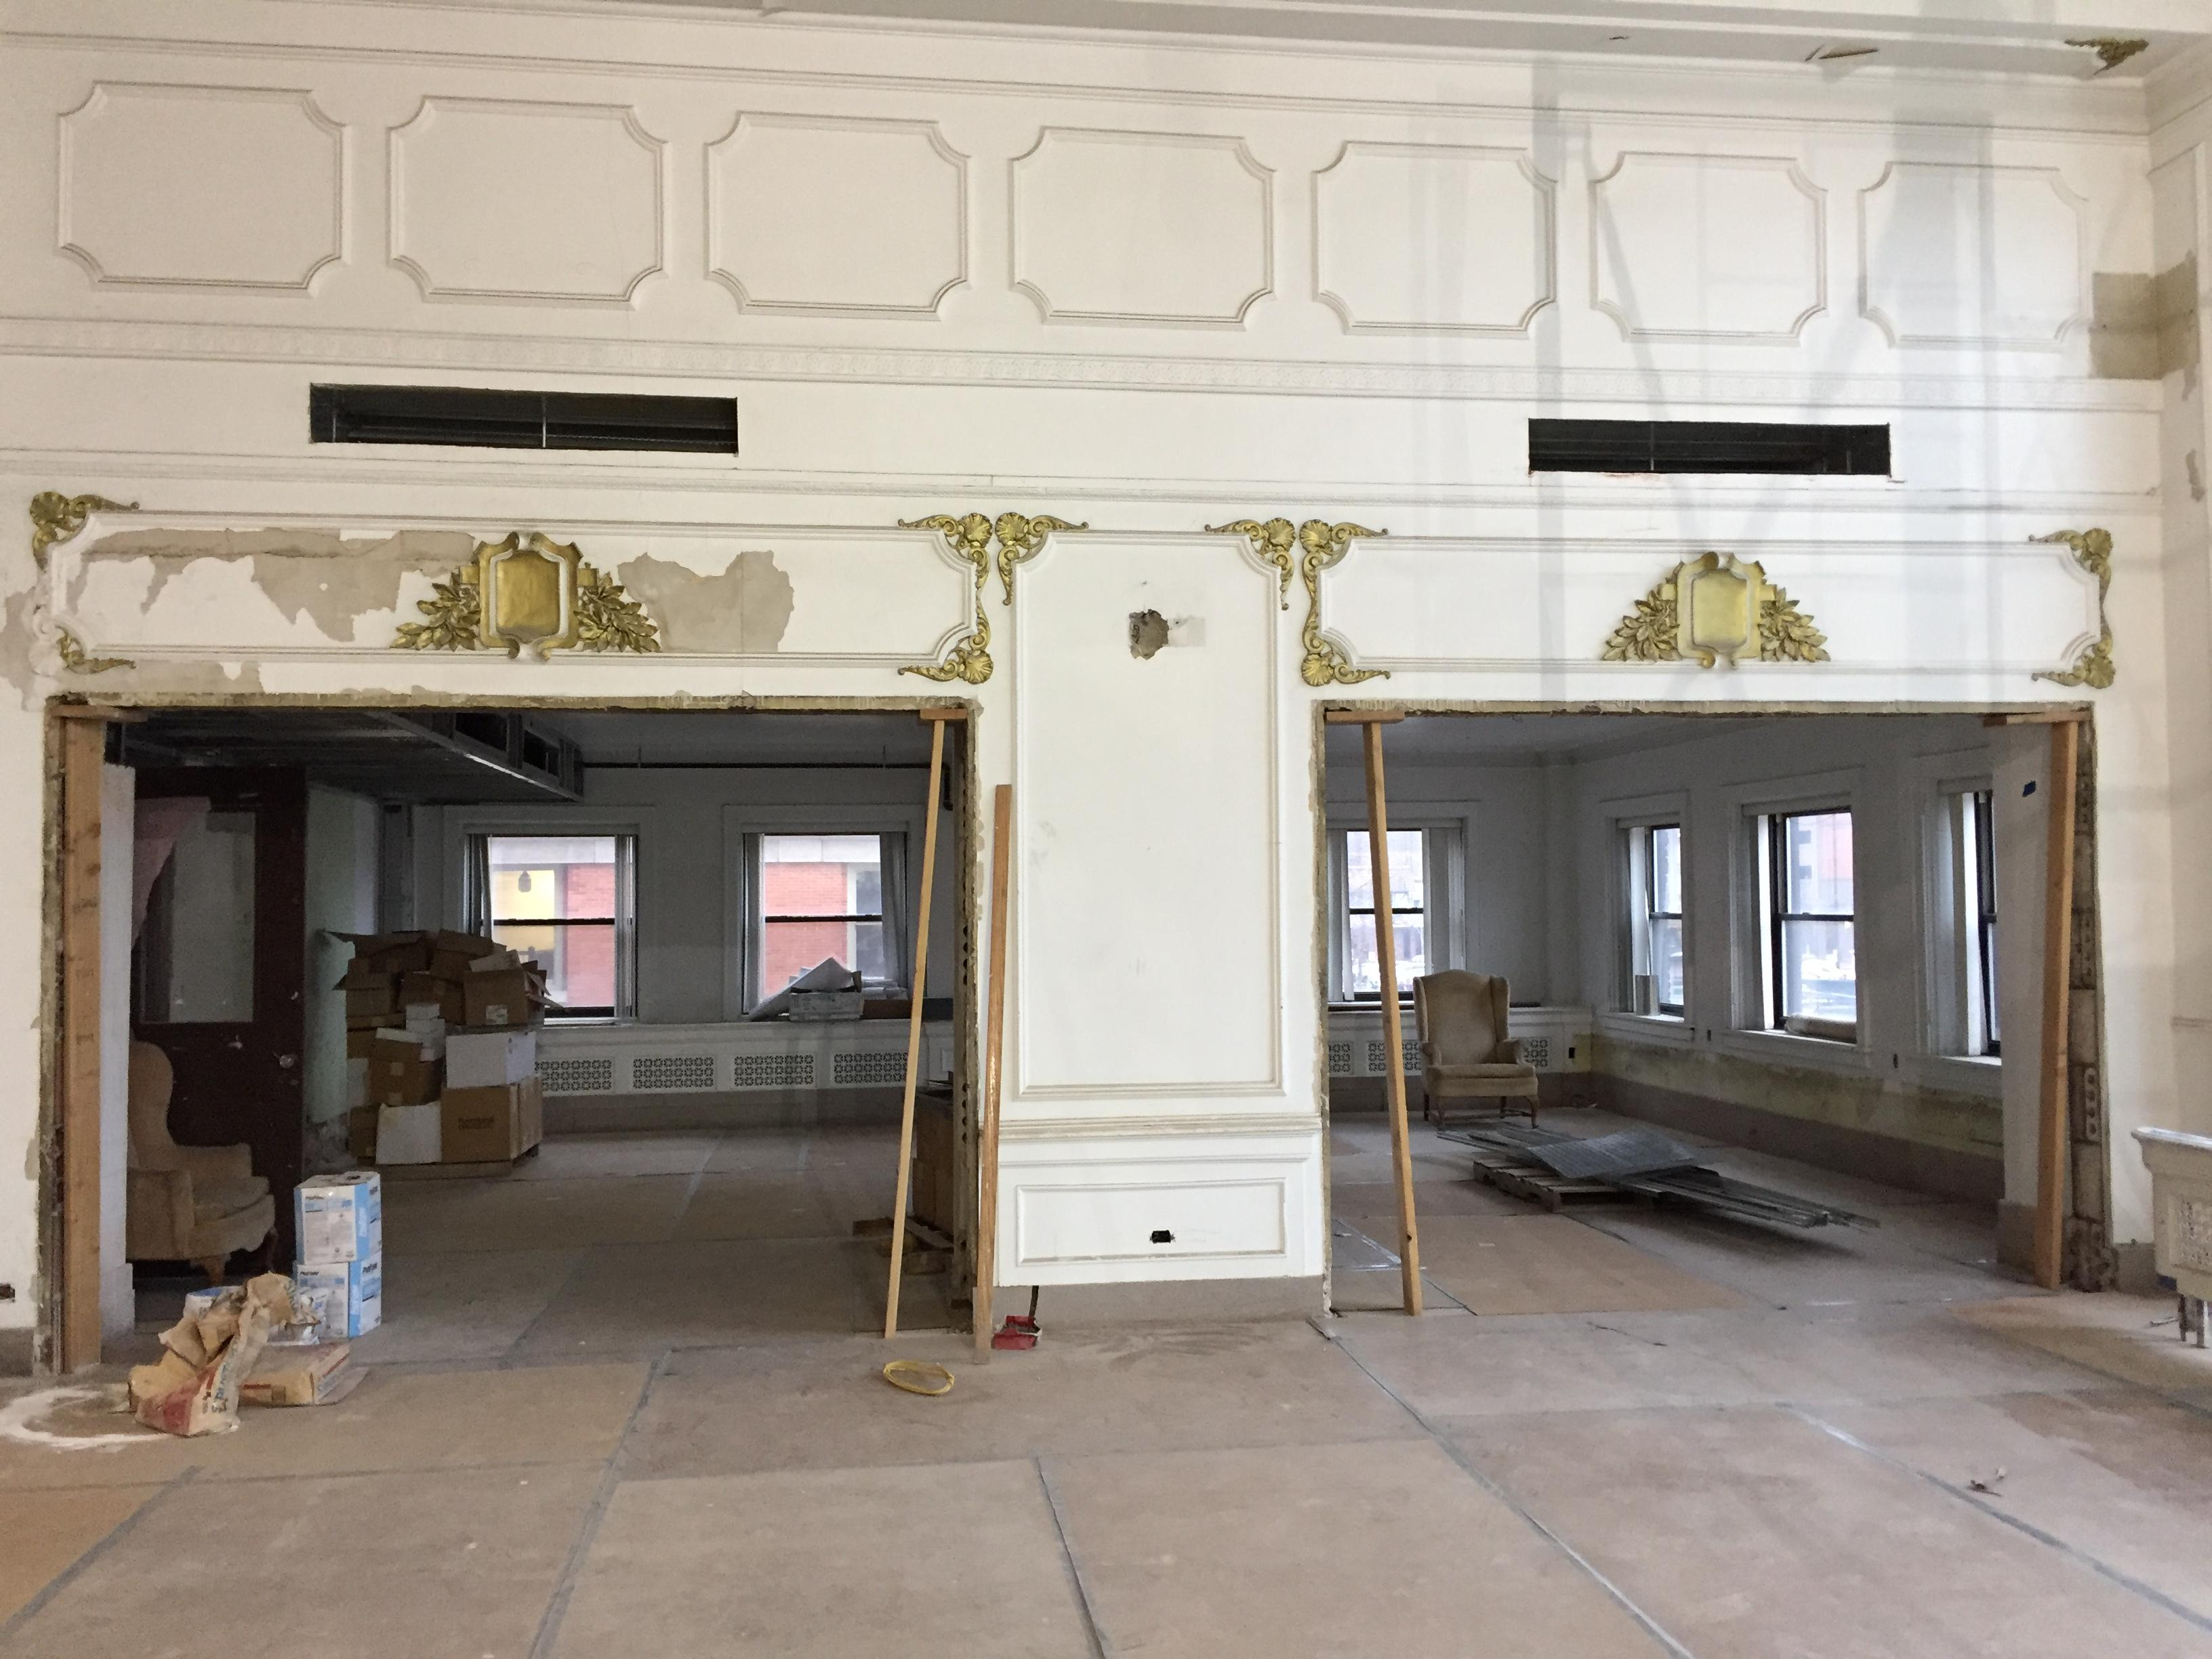 The ballroom under construction in the Hotel Northland on January 11, 2018. (Photo credit: WLUK)